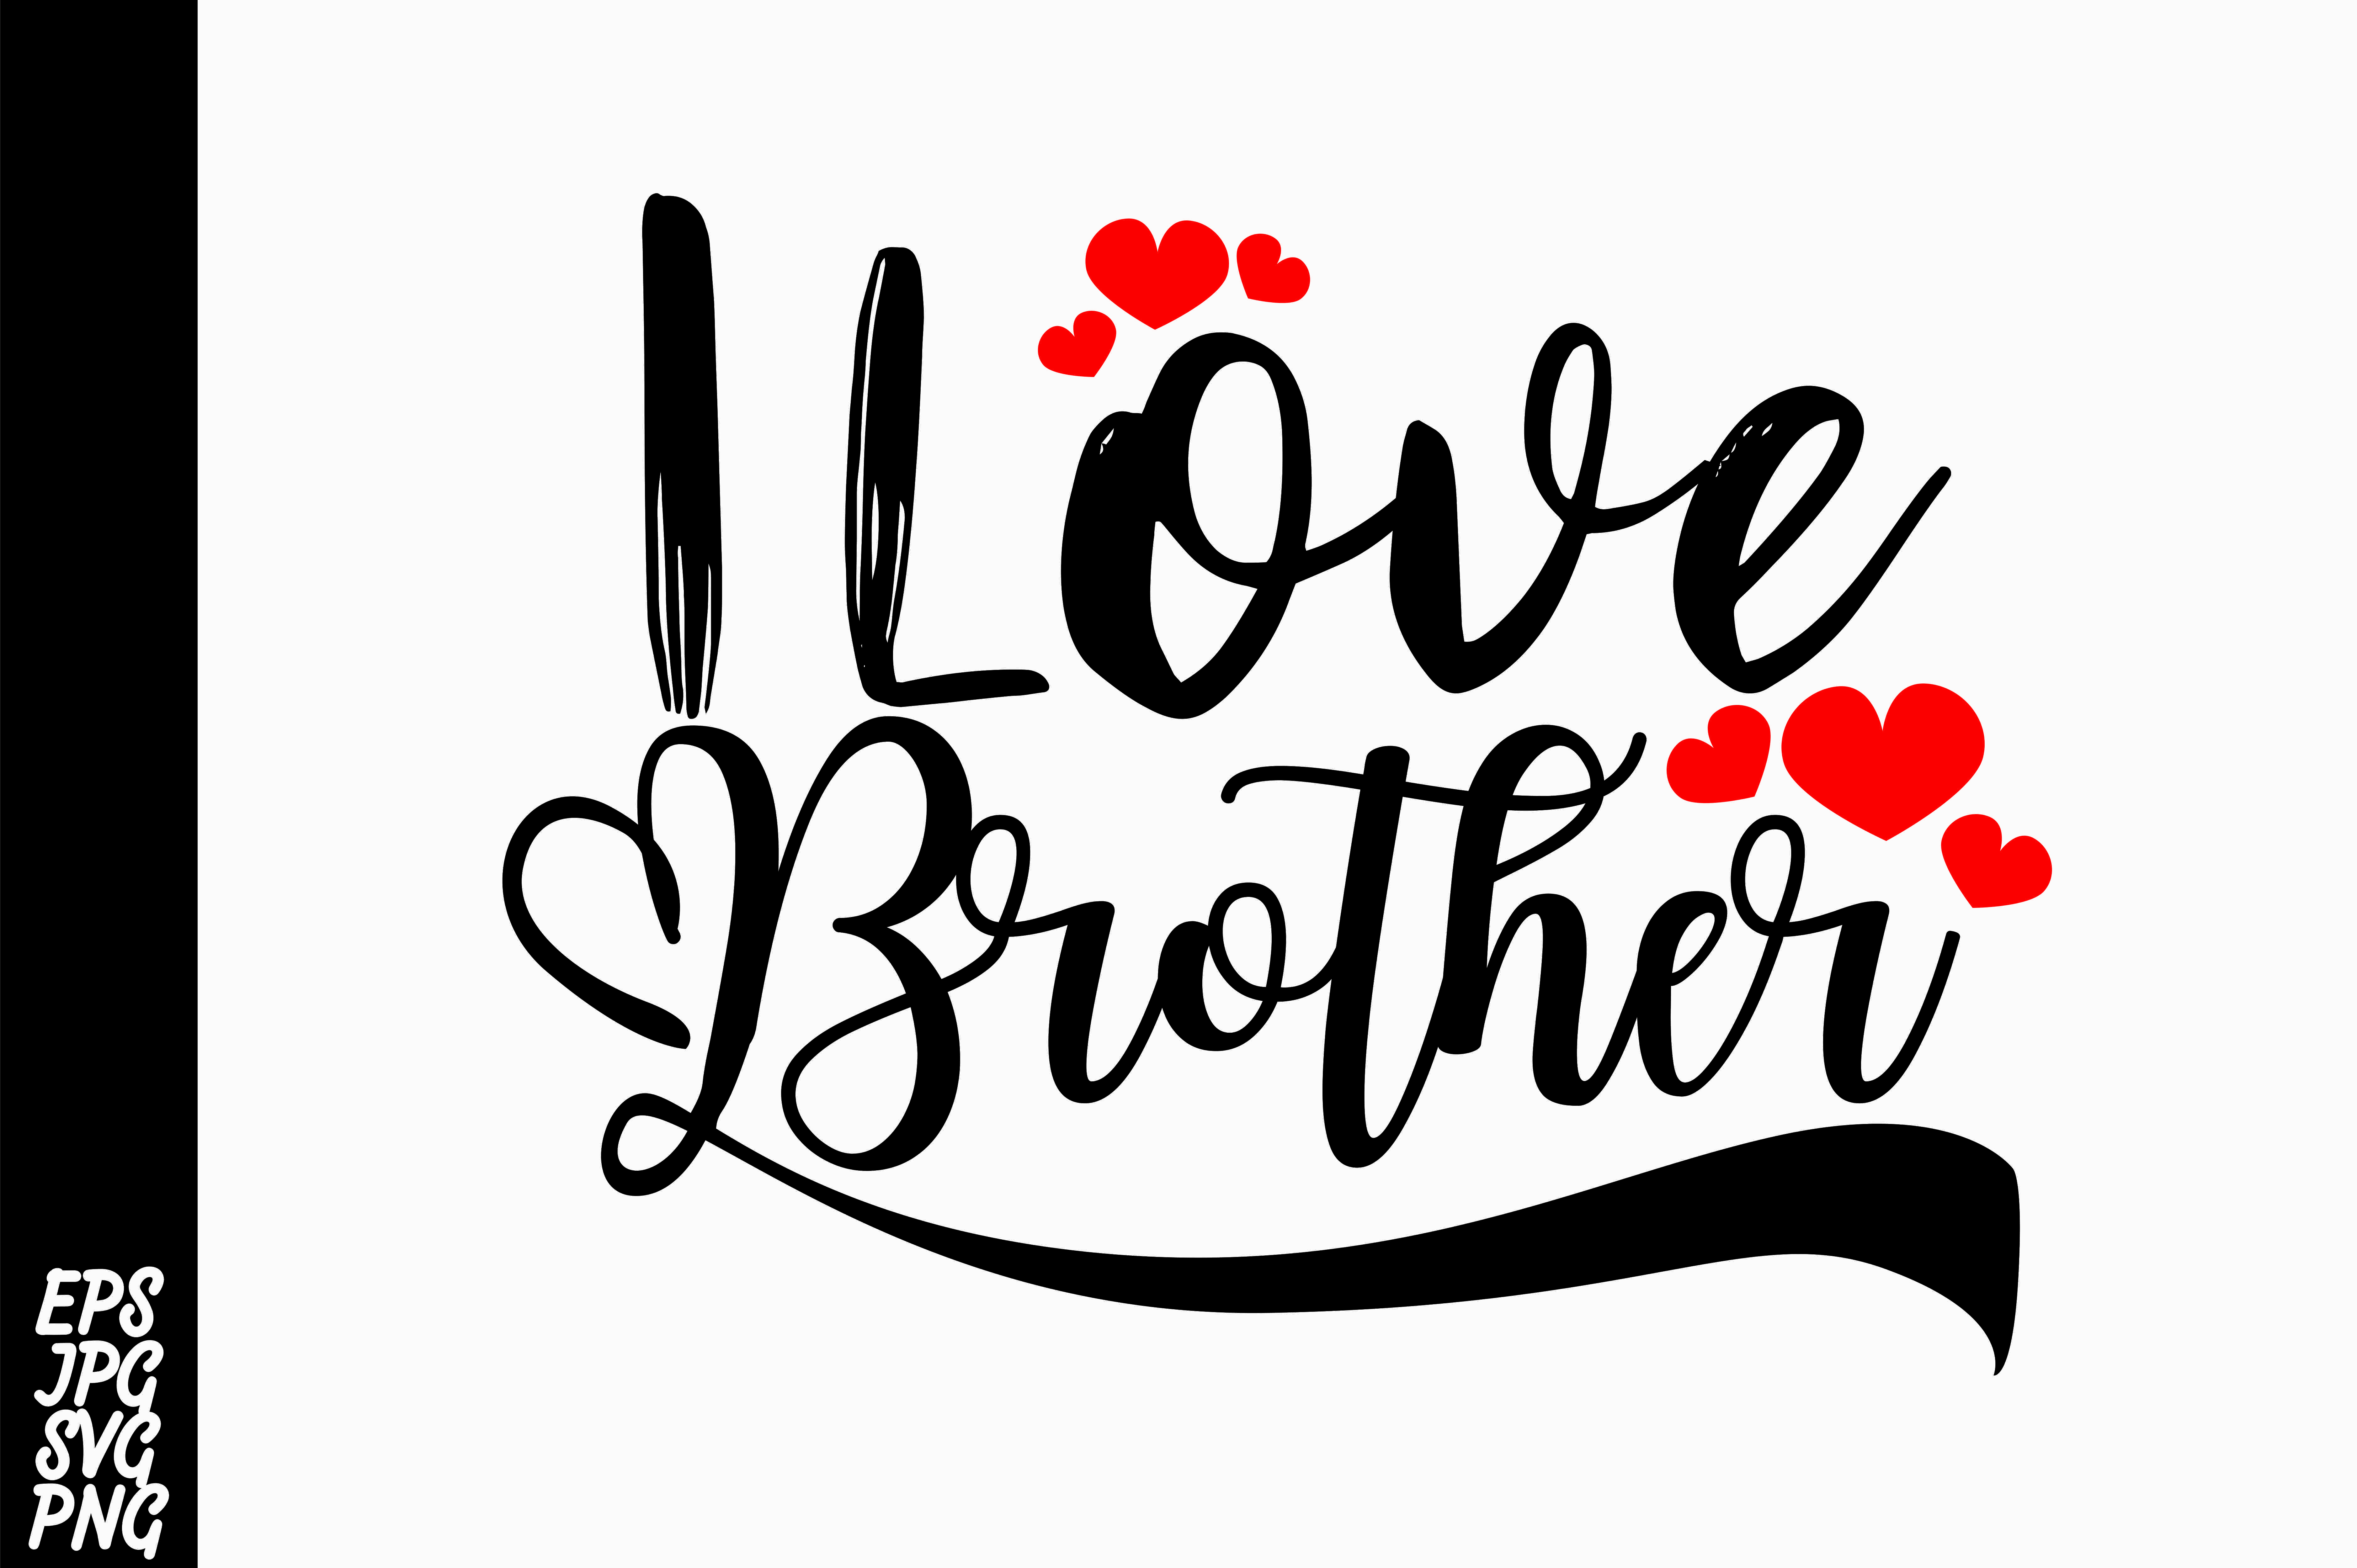 Download Free I Love Brother Svg Graphic By Arsa Adjie Creative Fabrica for Cricut Explore, Silhouette and other cutting machines.